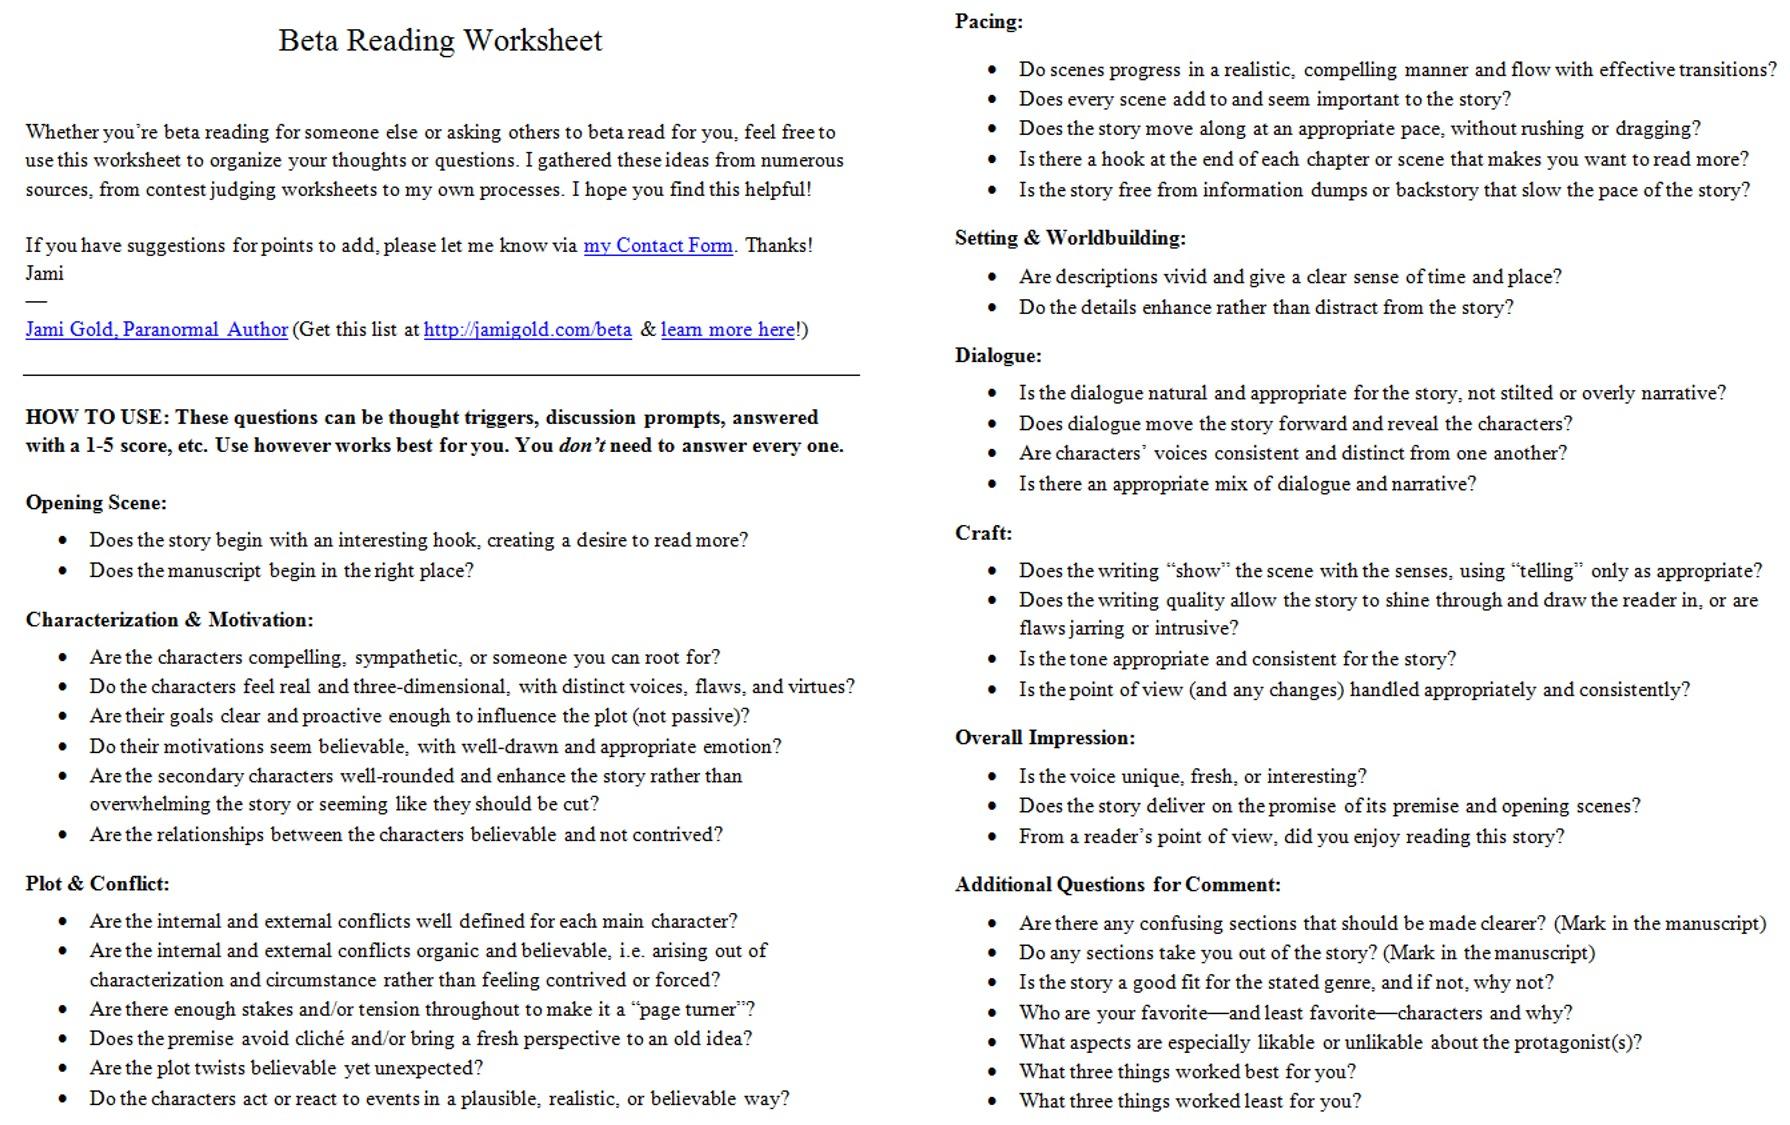 Weirdmailus  Ravishing Worksheets For Writers  Jami Gold Paranormal Author With Exquisite Screen Shot Of The Twopage Beta Reading Worksheet With Divine Simple Math Equations Worksheets Also Form  Worksheet In Addition Heart Dissection Lab Worksheet And Your You Re Grammar Worksheet As Well As Q Worksheets For Preschool Additionally Home Renovation Budget Worksheet From Jamigoldcom With Weirdmailus  Exquisite Worksheets For Writers  Jami Gold Paranormal Author With Divine Screen Shot Of The Twopage Beta Reading Worksheet And Ravishing Simple Math Equations Worksheets Also Form  Worksheet In Addition Heart Dissection Lab Worksheet From Jamigoldcom